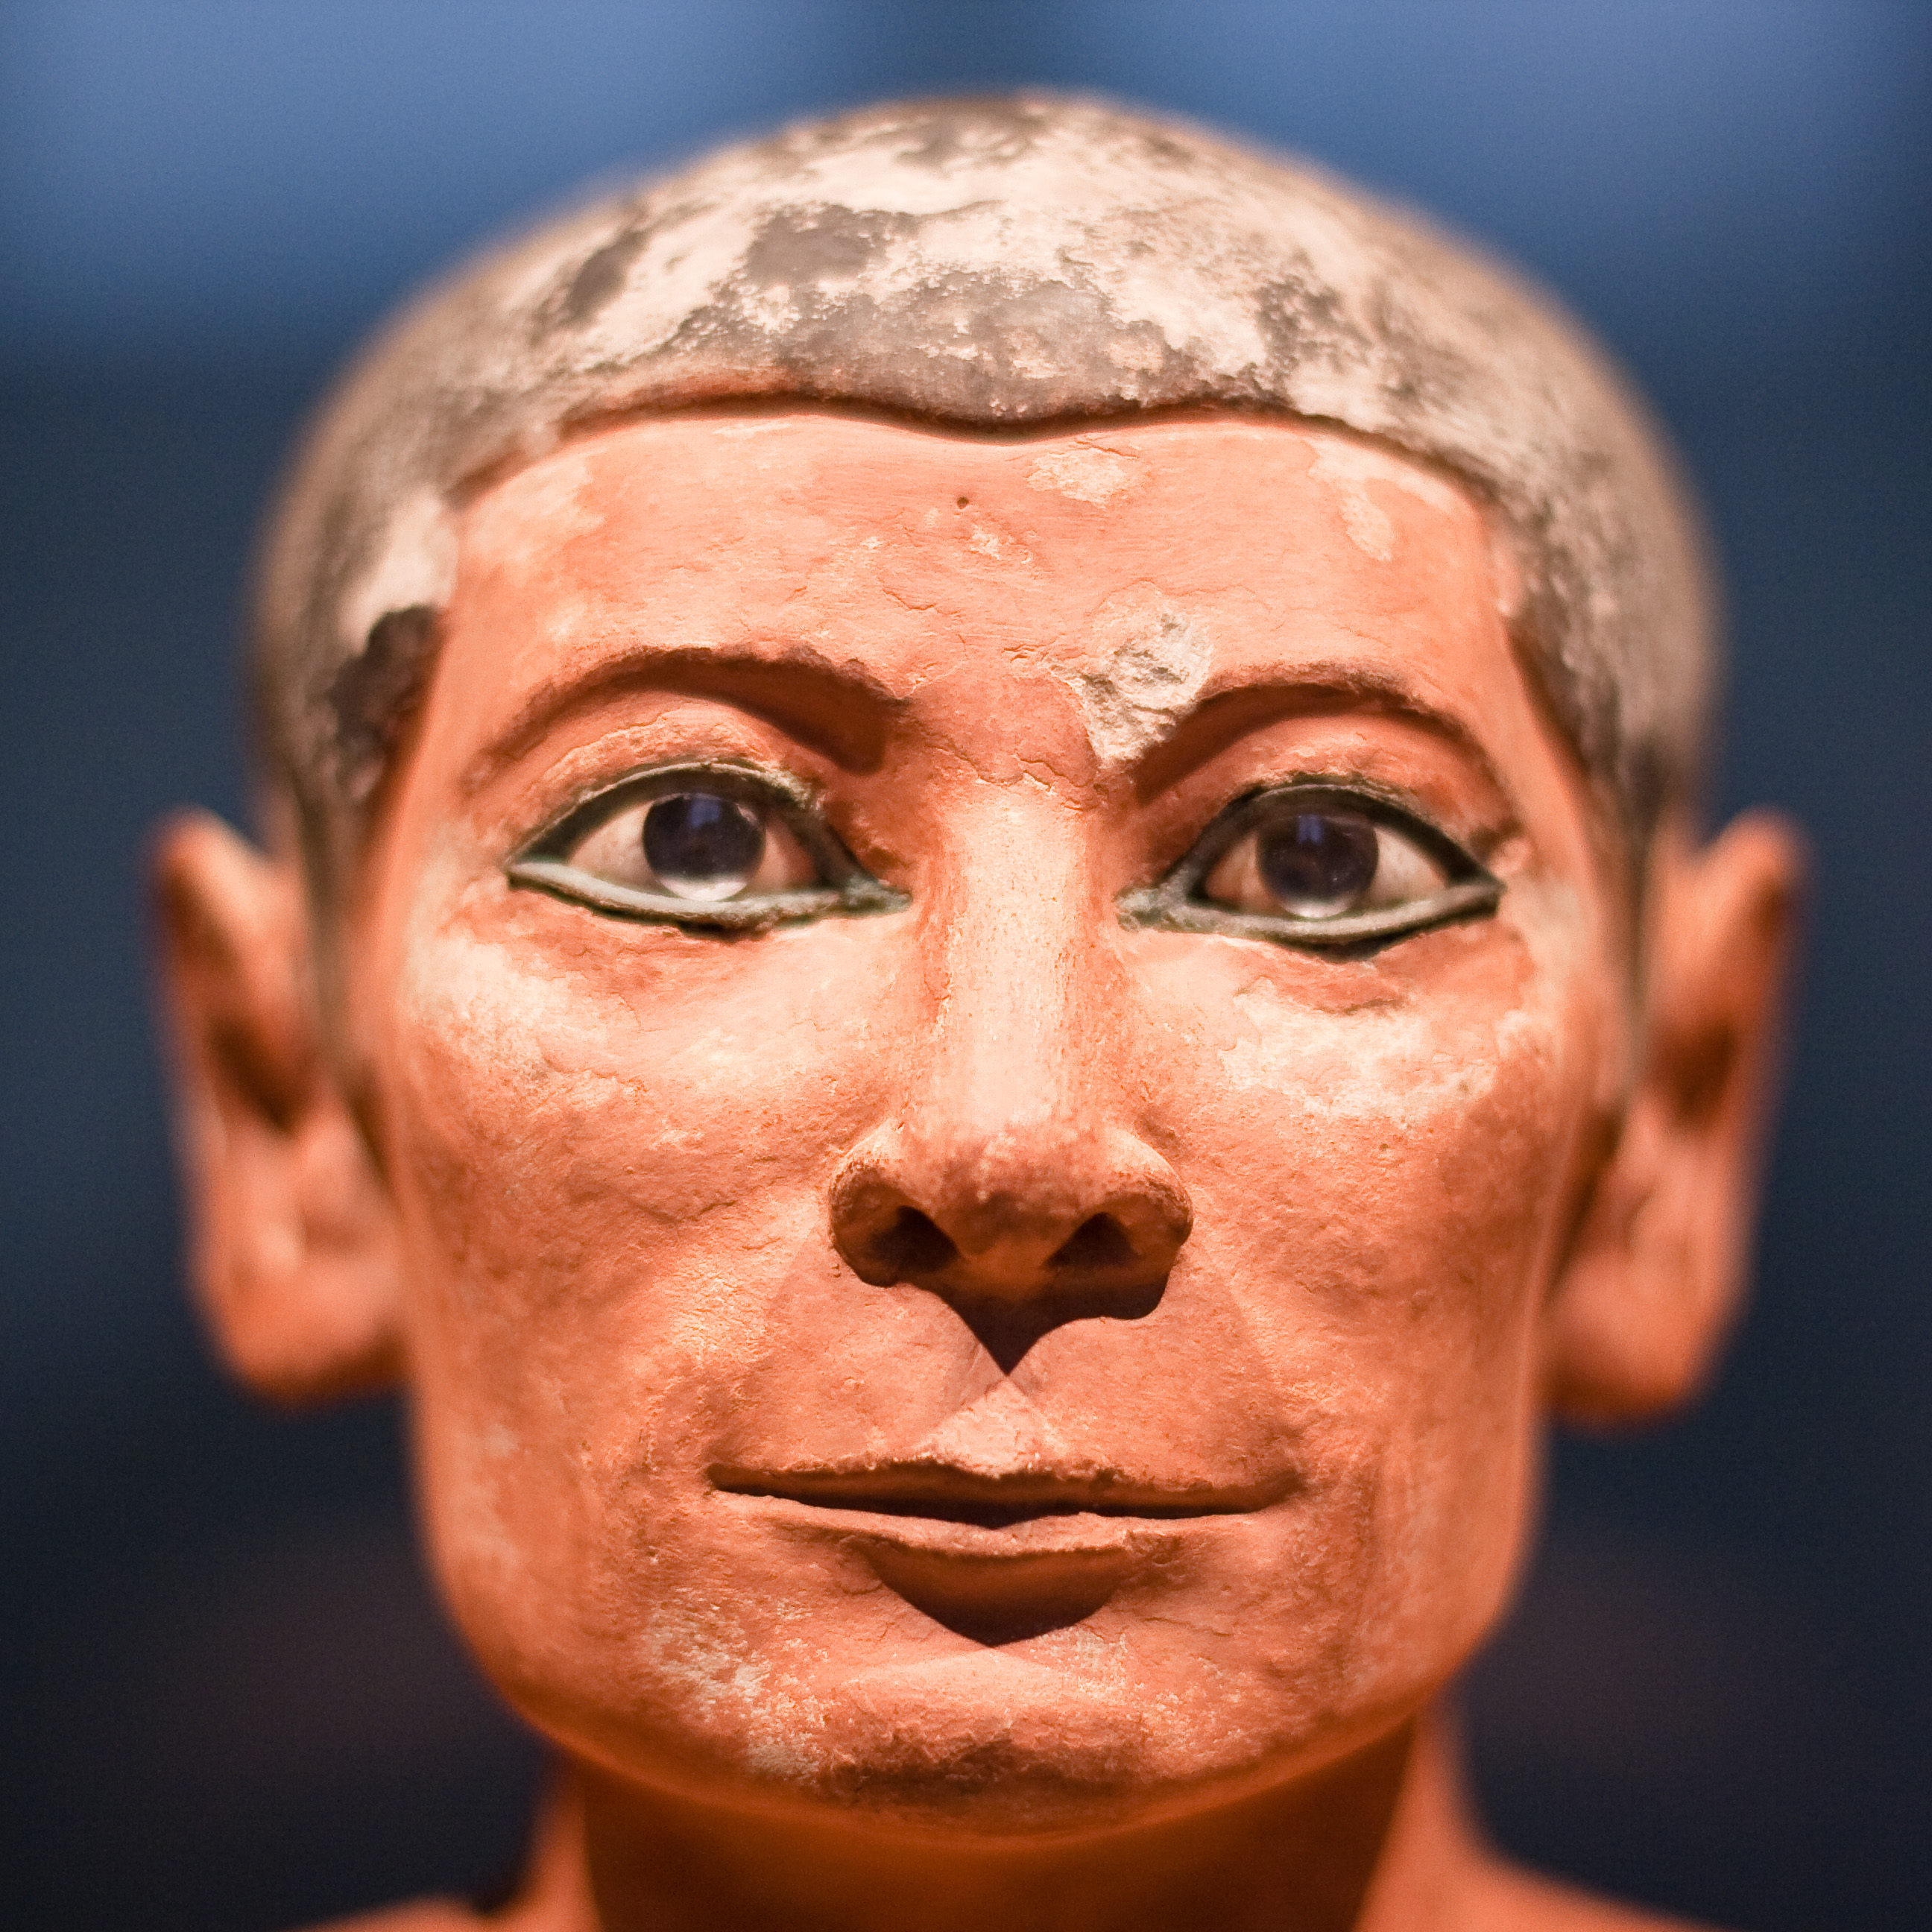 File:Seated Scribe Facial Close-Up.jpg - Wikipedia, the free ...